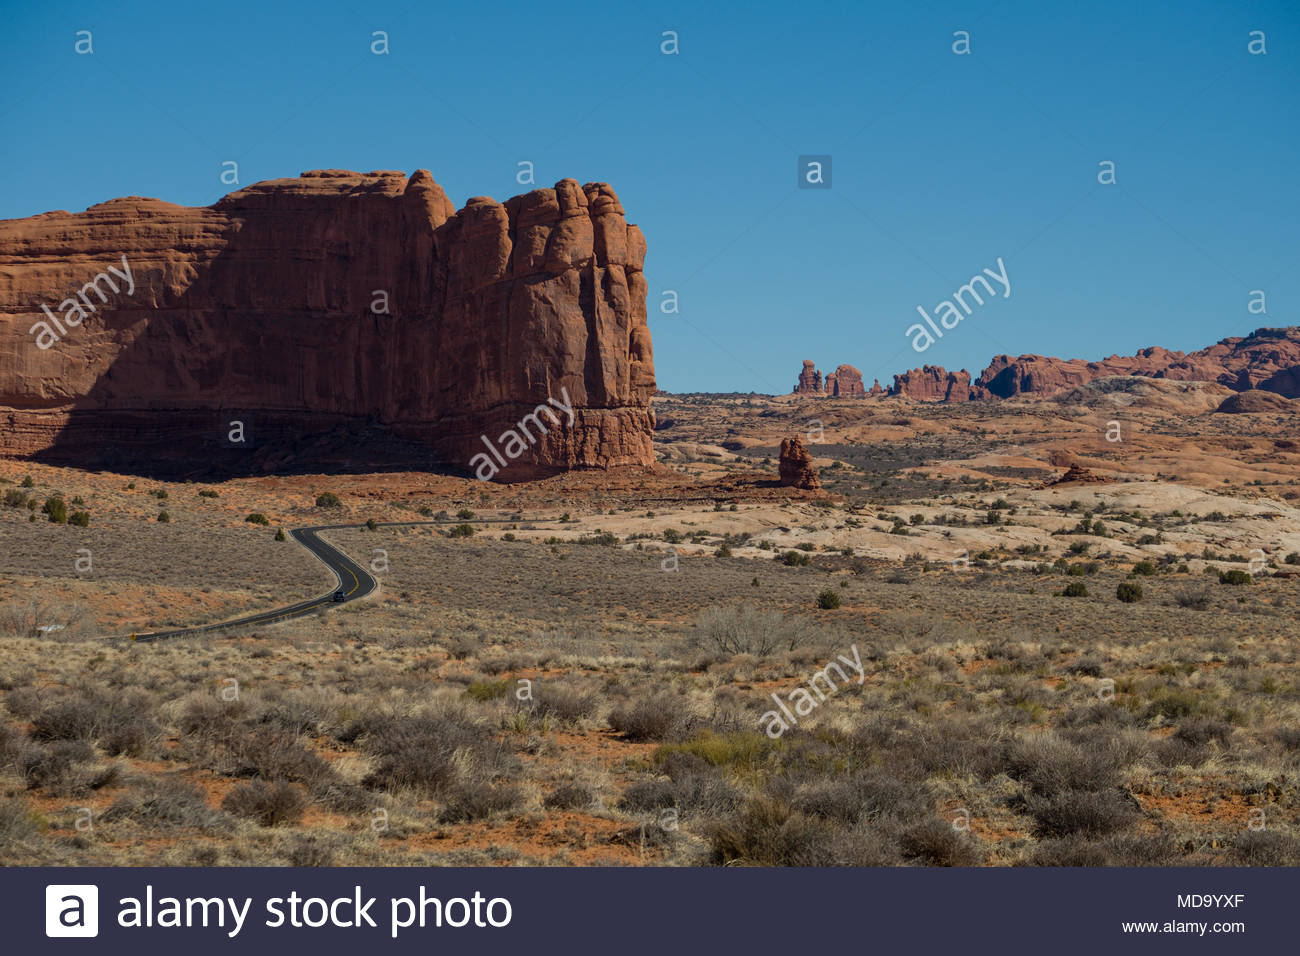 Asphalt road twisting through the landscape in Arches National Park, Grand County, Utah, USA - Stock Image